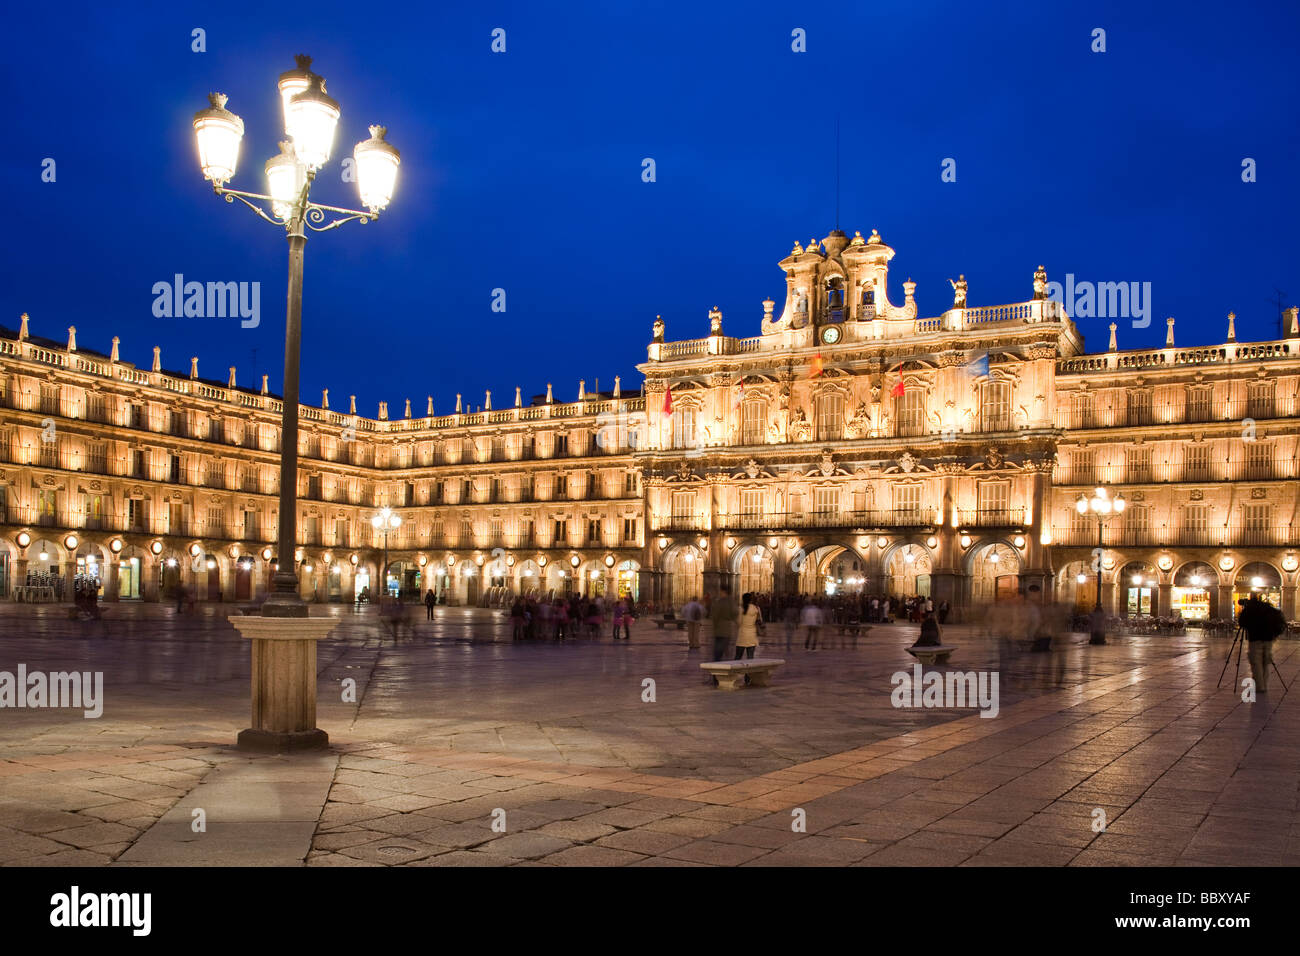 Plaza Mayor, Salamanca, Spain - Stock Image